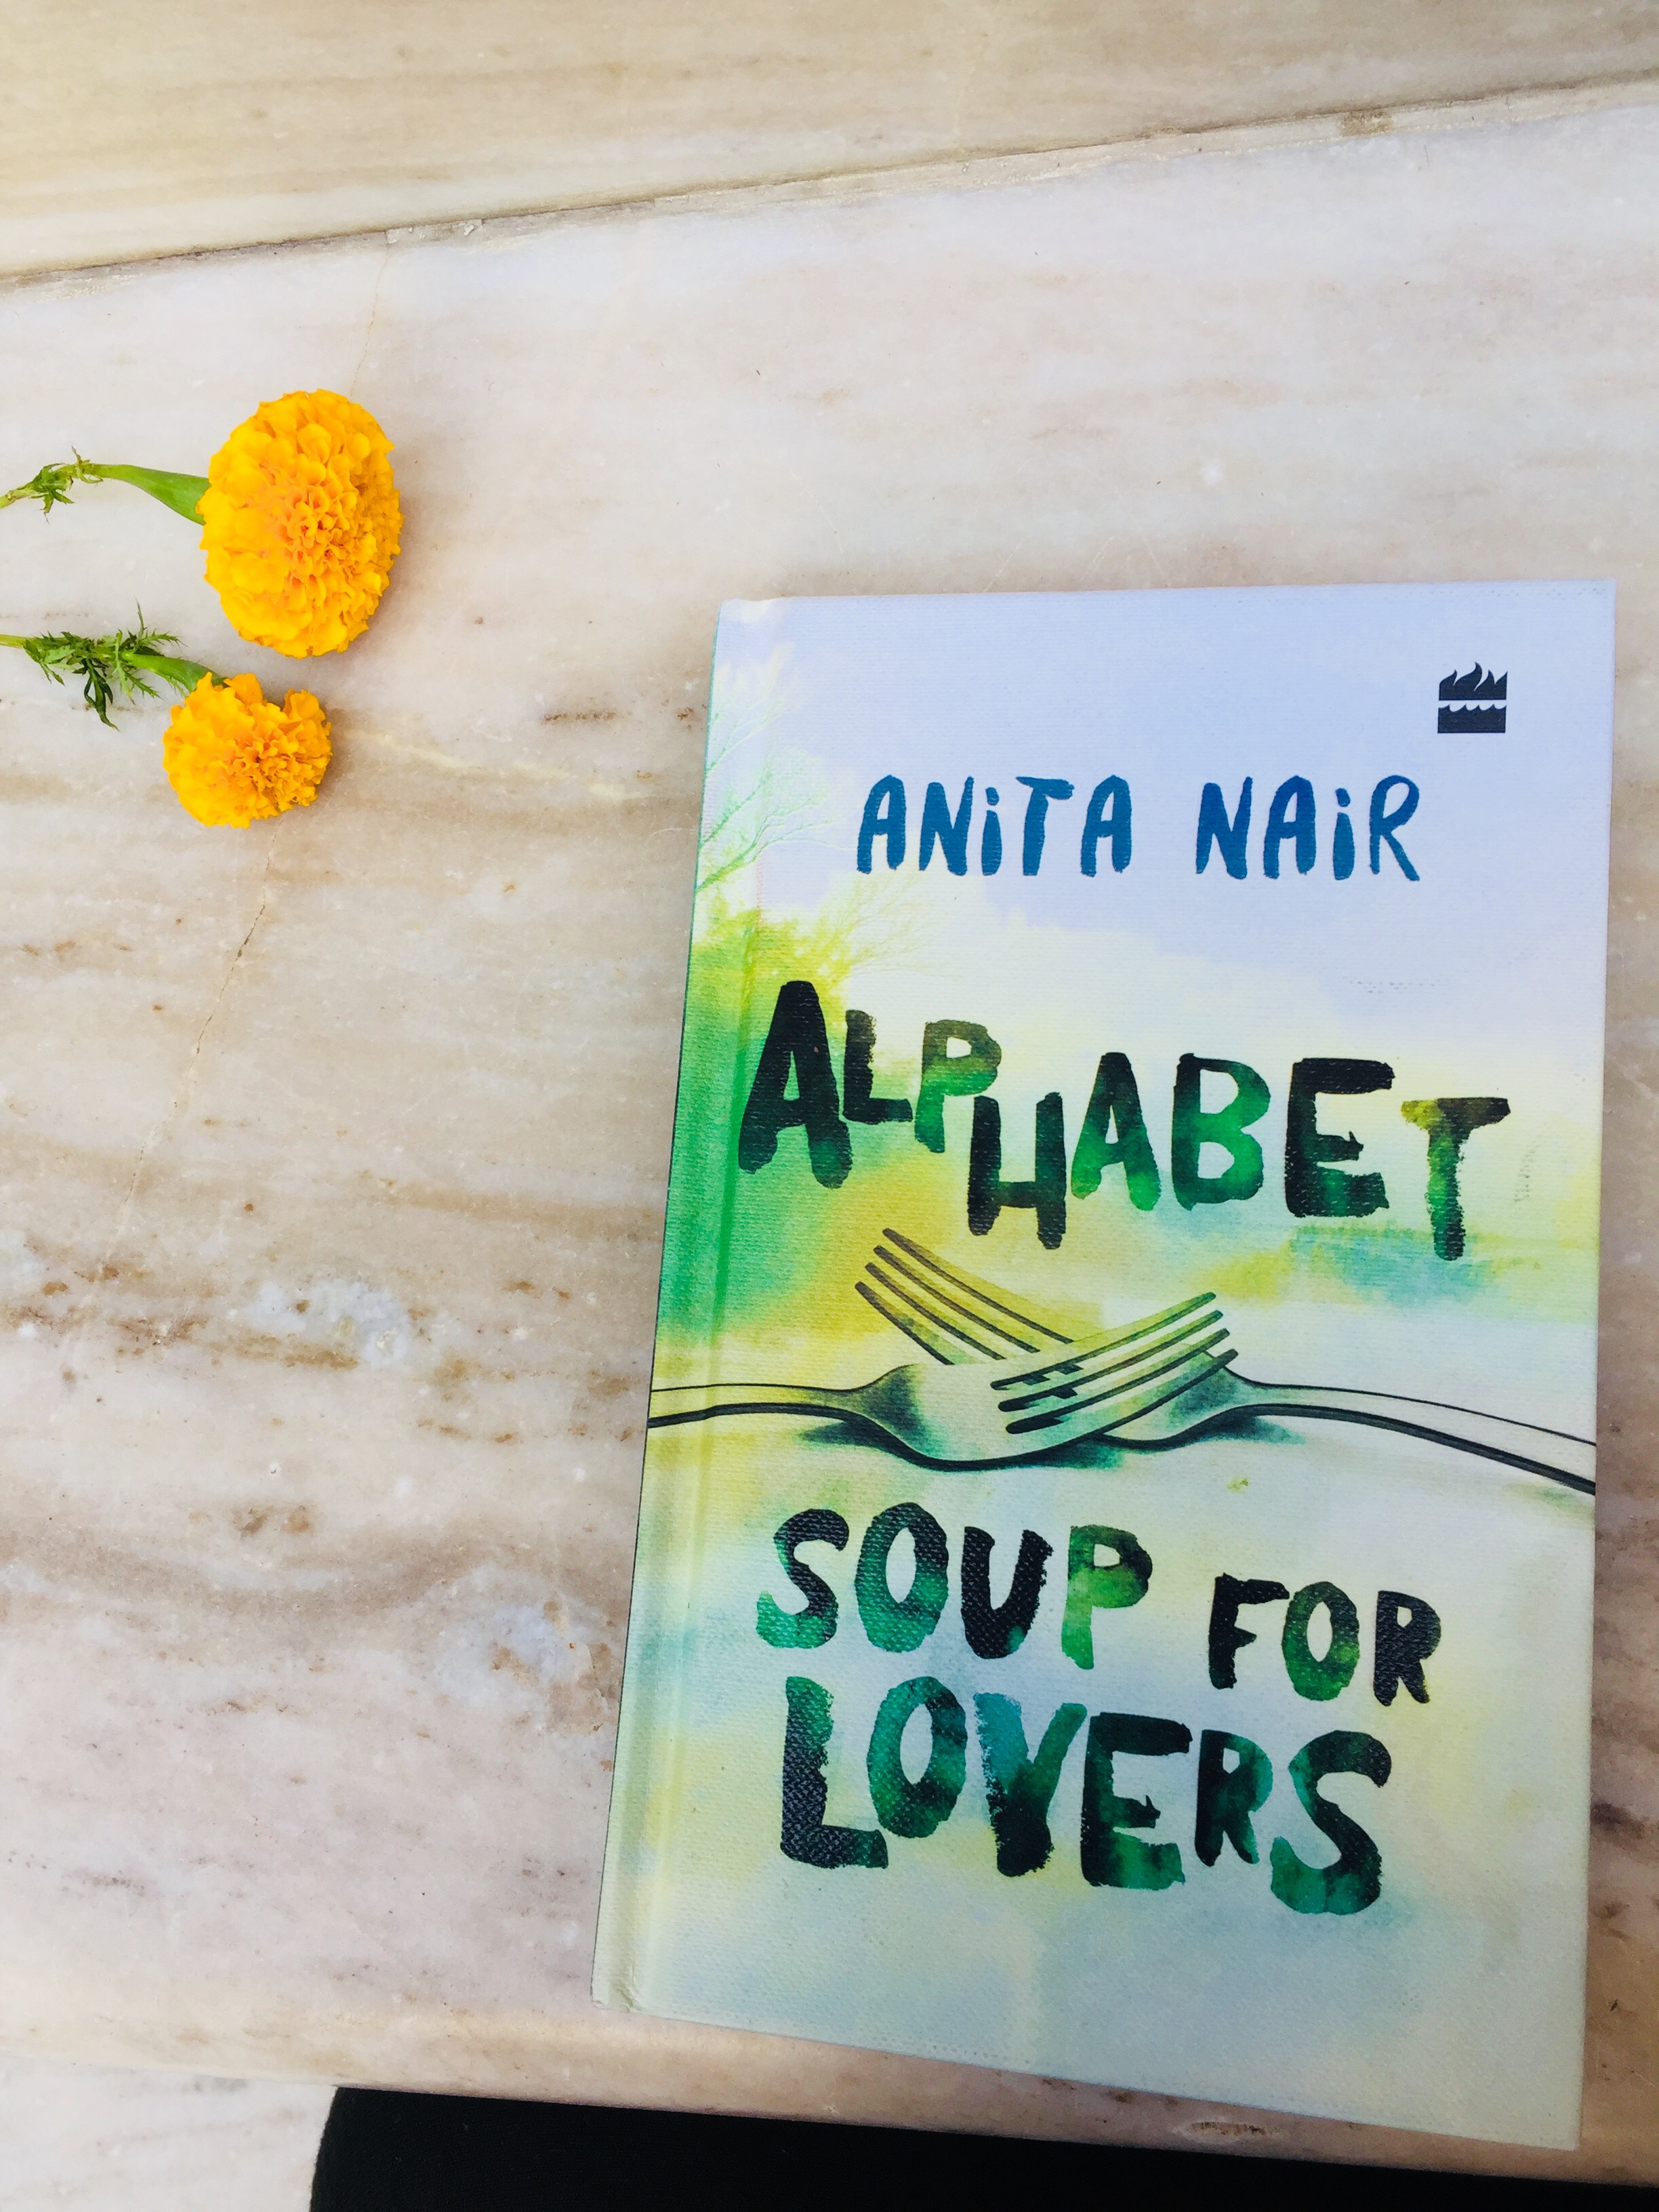 Alphabet soup for lover by Anita Nair #atozchallenge